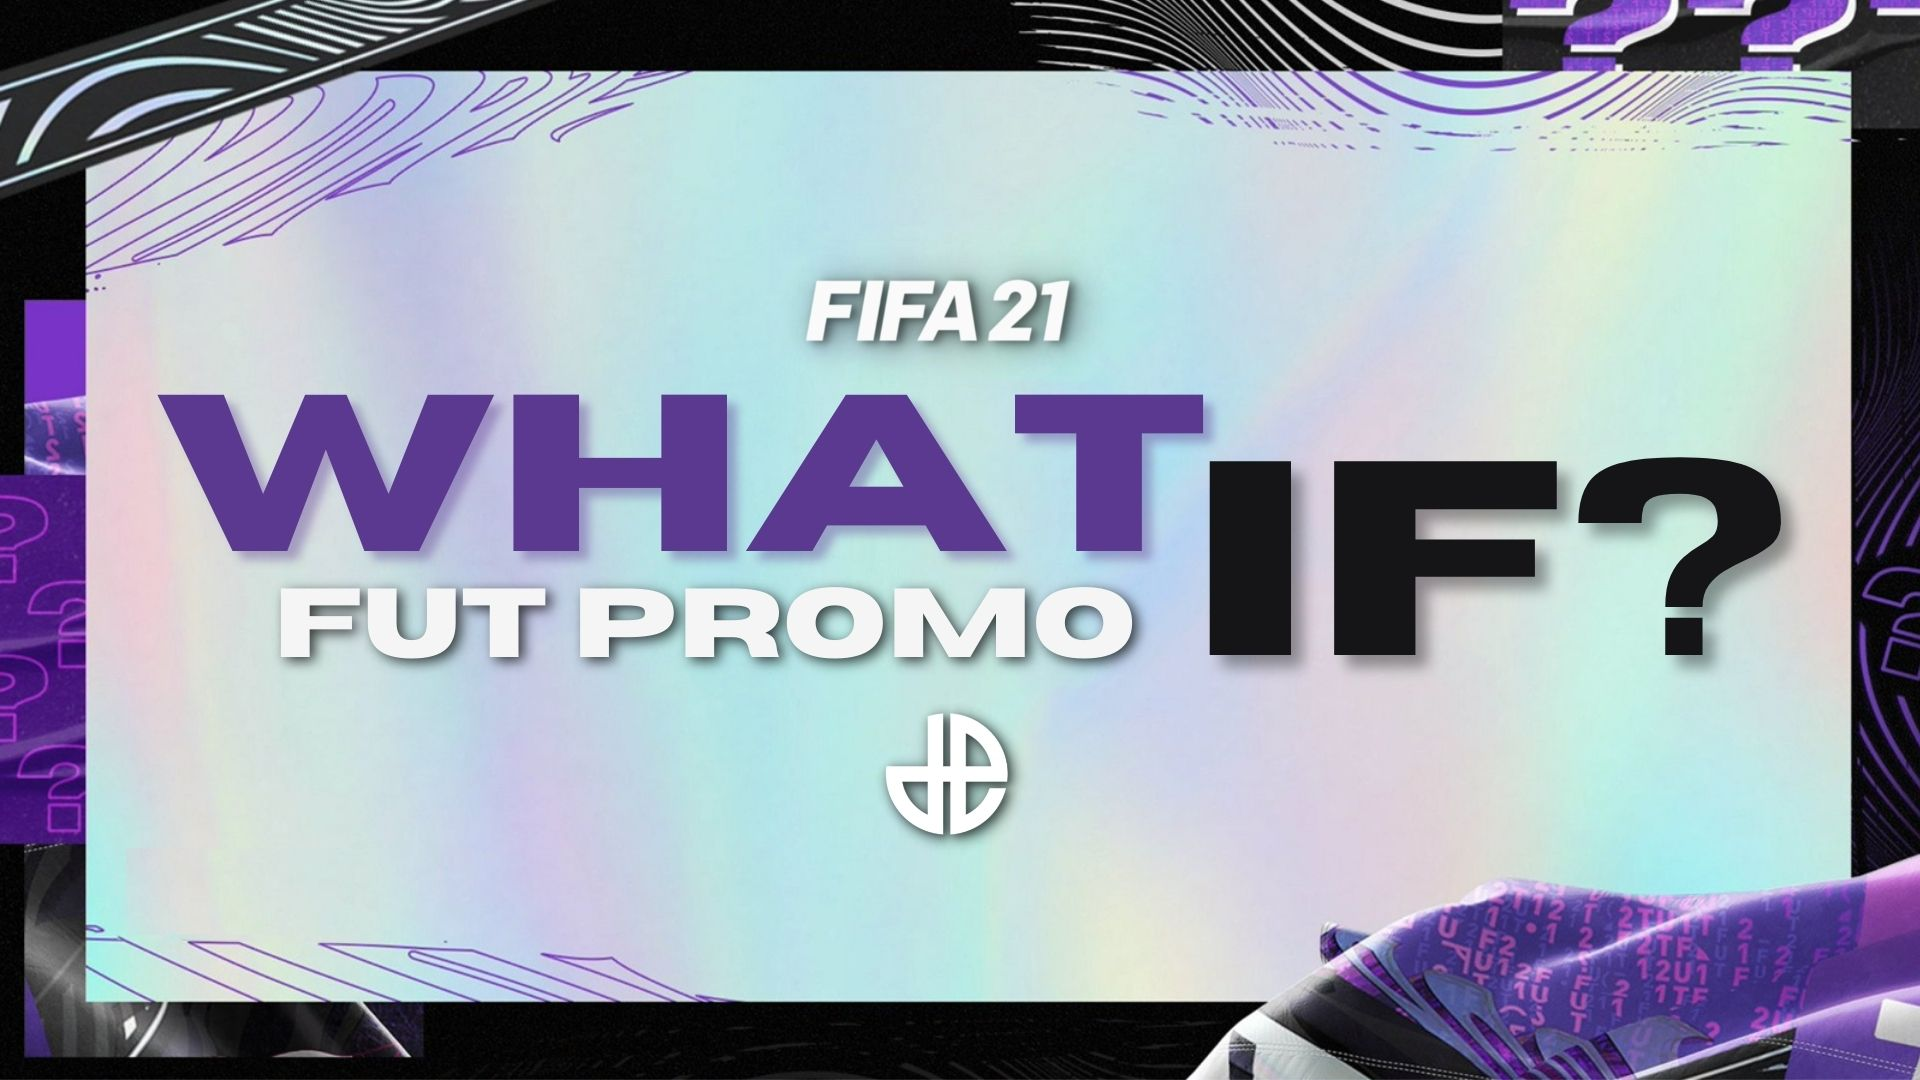 New FIFA 21 promo What If appears on FUT loading screen.